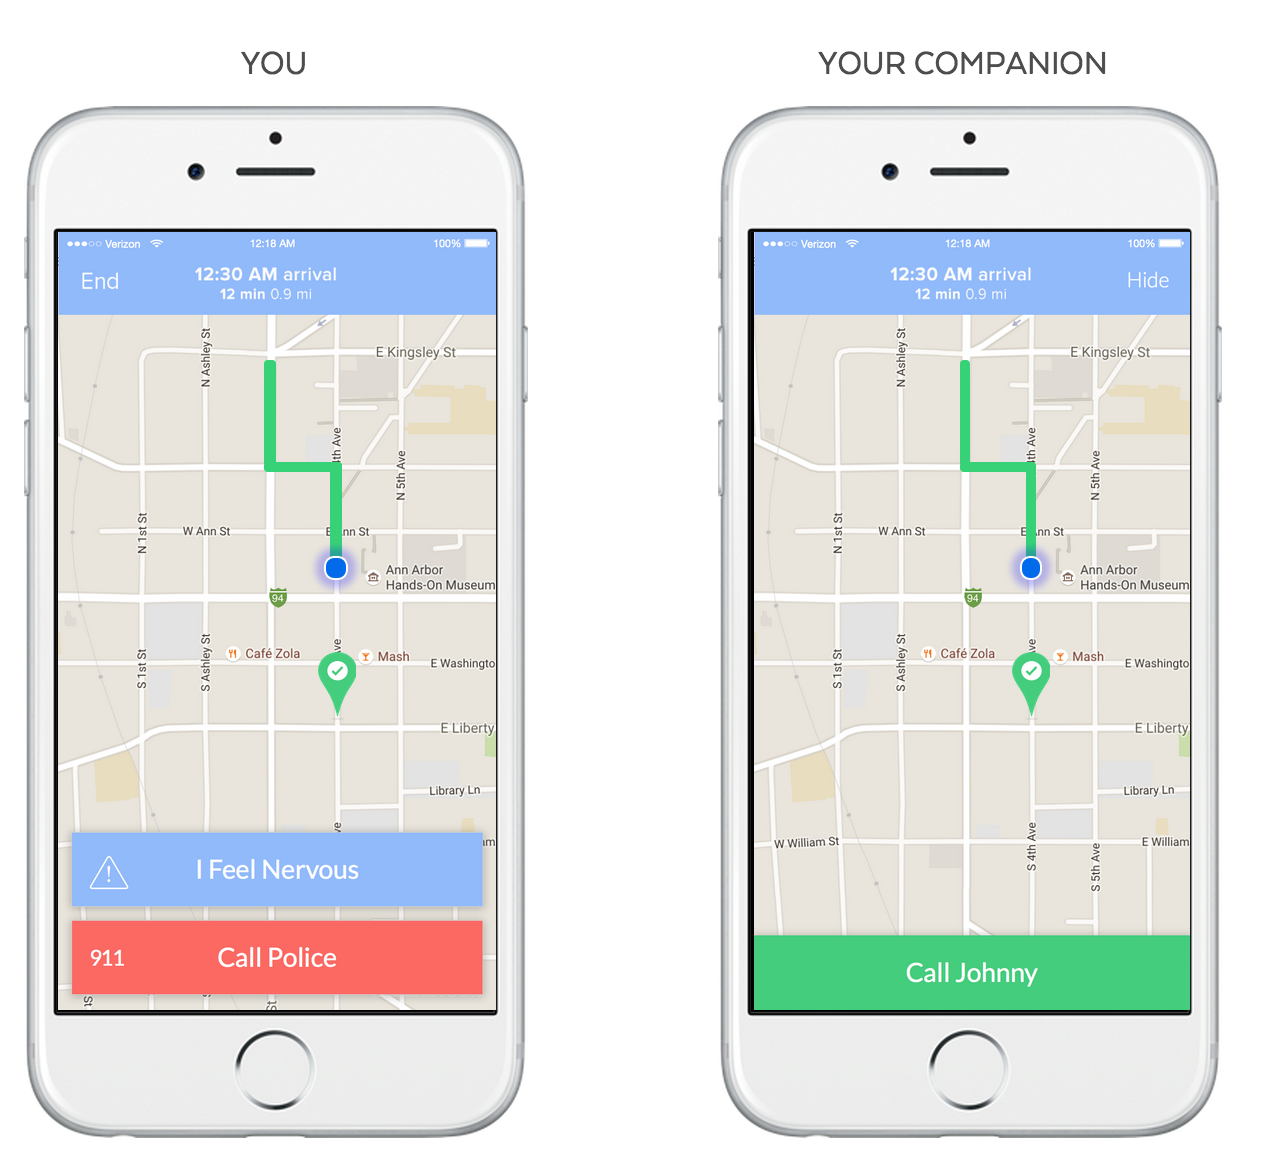 The Companion App allows a friend to virtually follow you home and to know automatically if something has gone wrong.